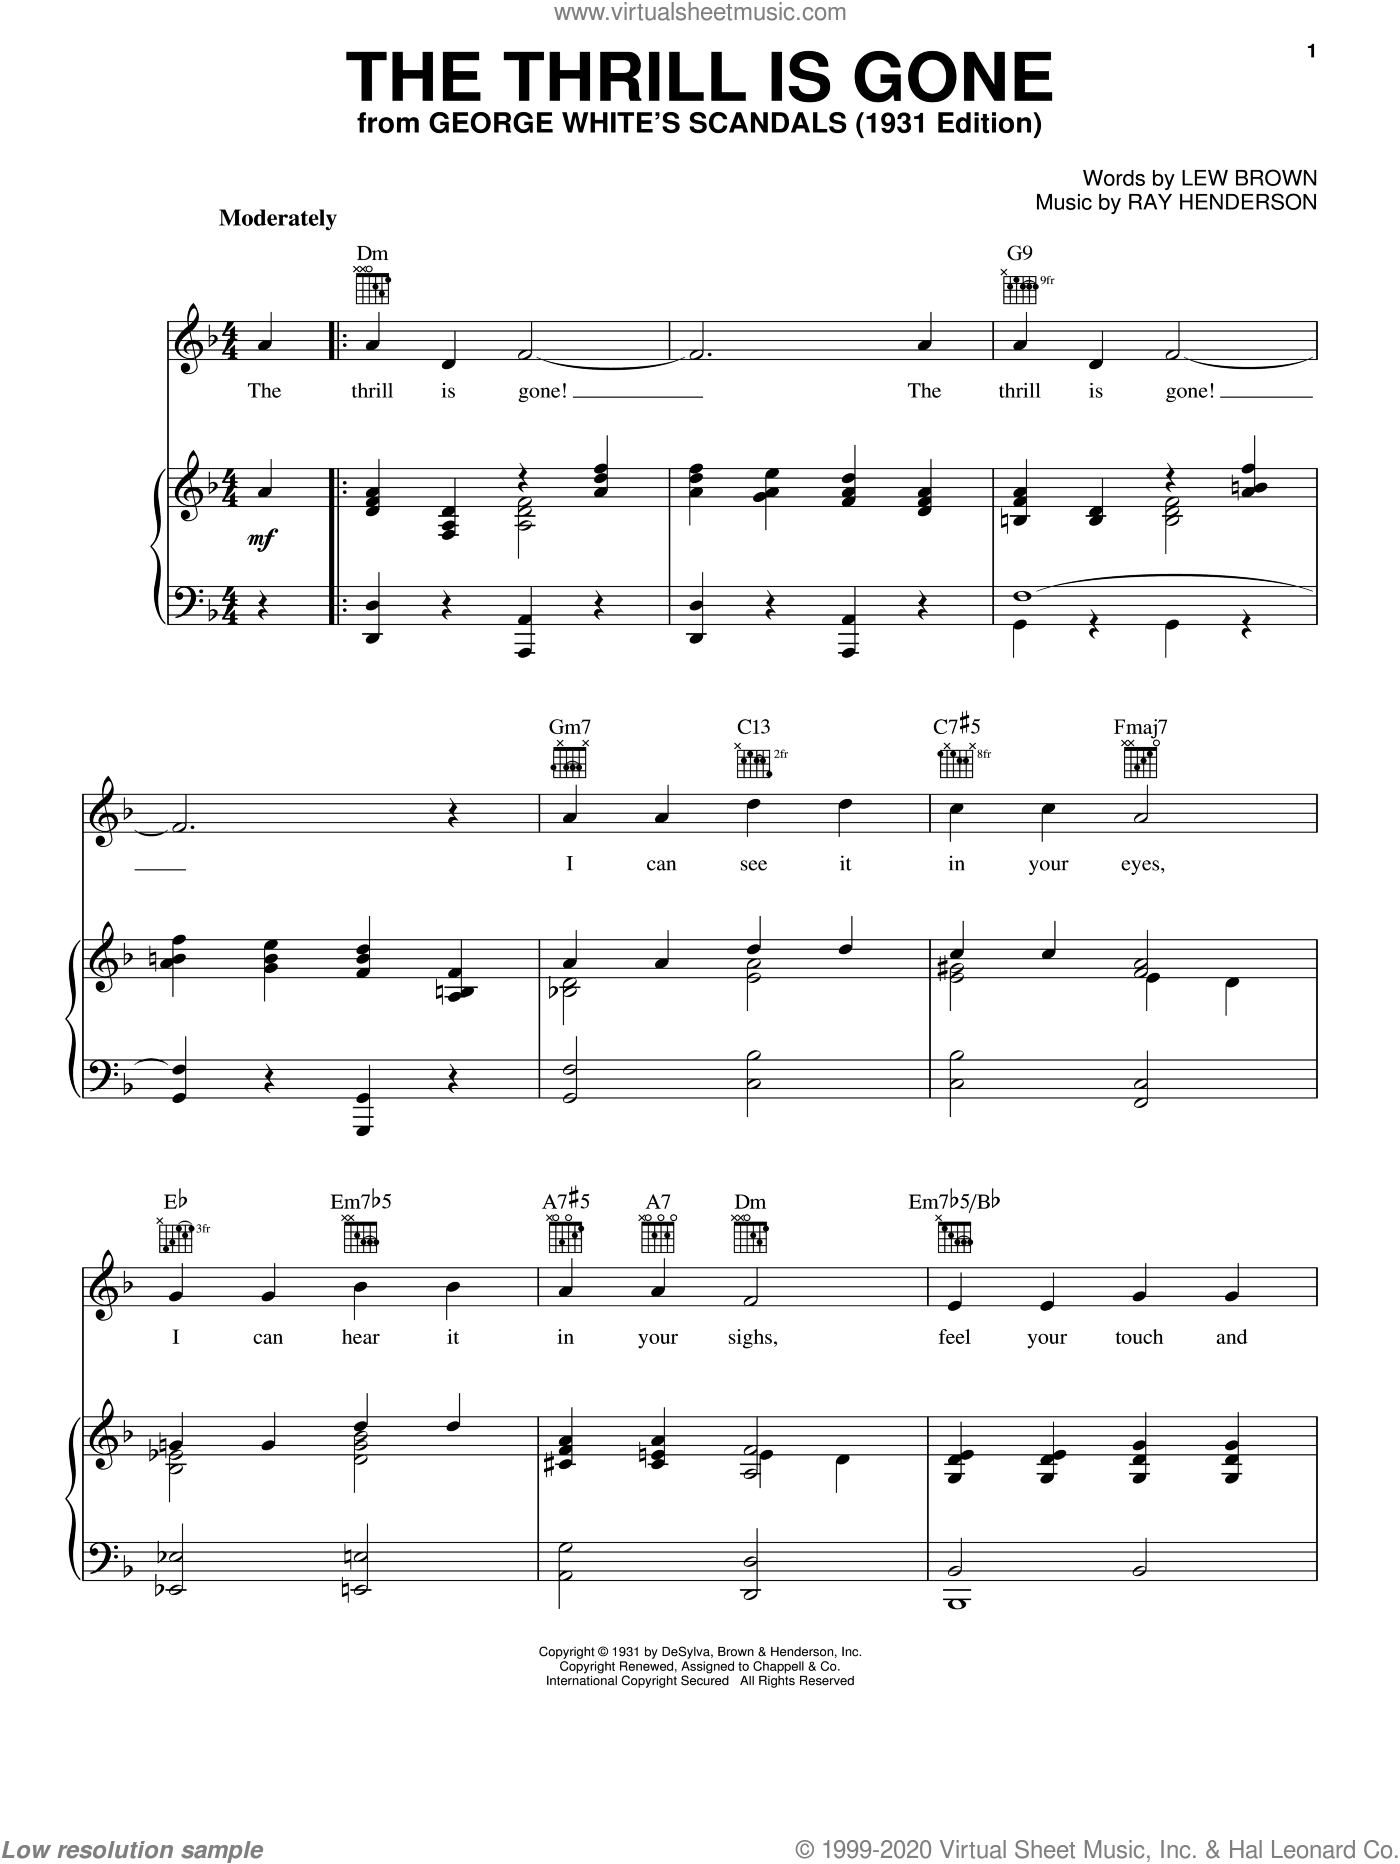 The Thrill Is Gone sheet music for voice, piano or guitar by Ray Henderson